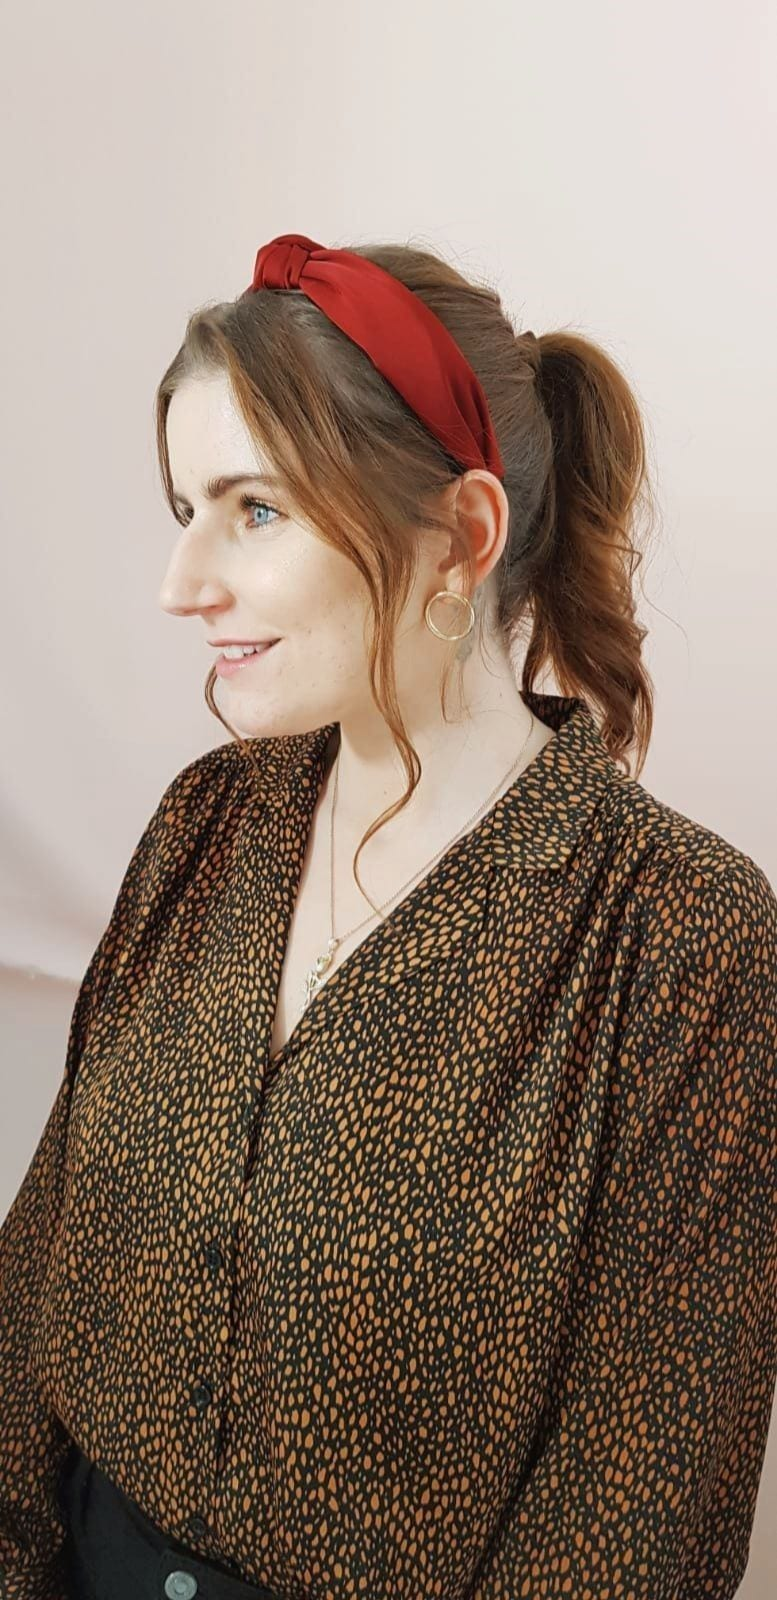 Trend on trial: Woman with brown wavy hair in ponytail wearing a burgundy knotted headband and pattern shirt.